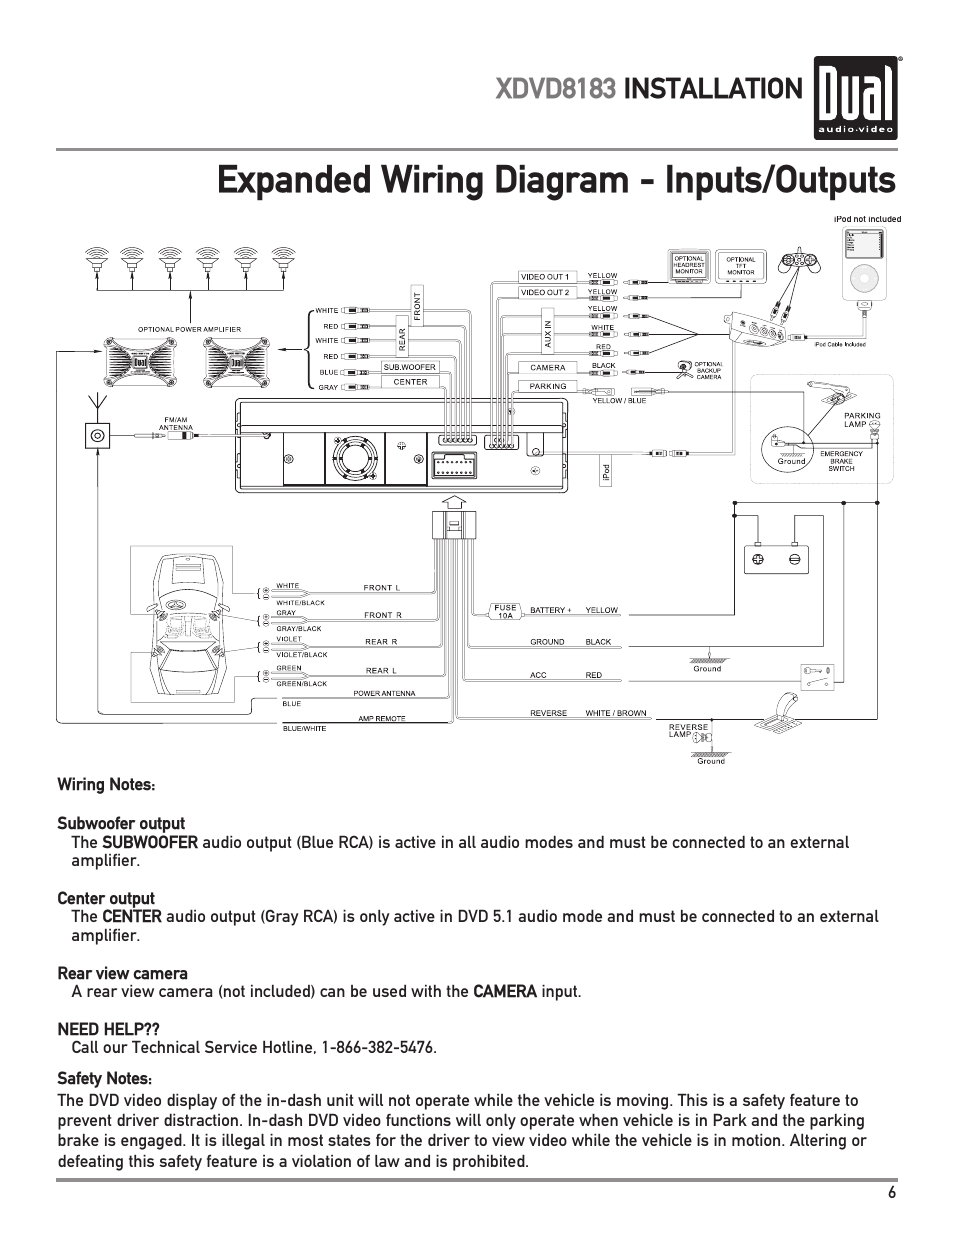 hight resolution of expanded wiring diagram inputs outputs xdvd8183 installationexpanded wiring diagram inputs outputs xdvd8183 installation dual